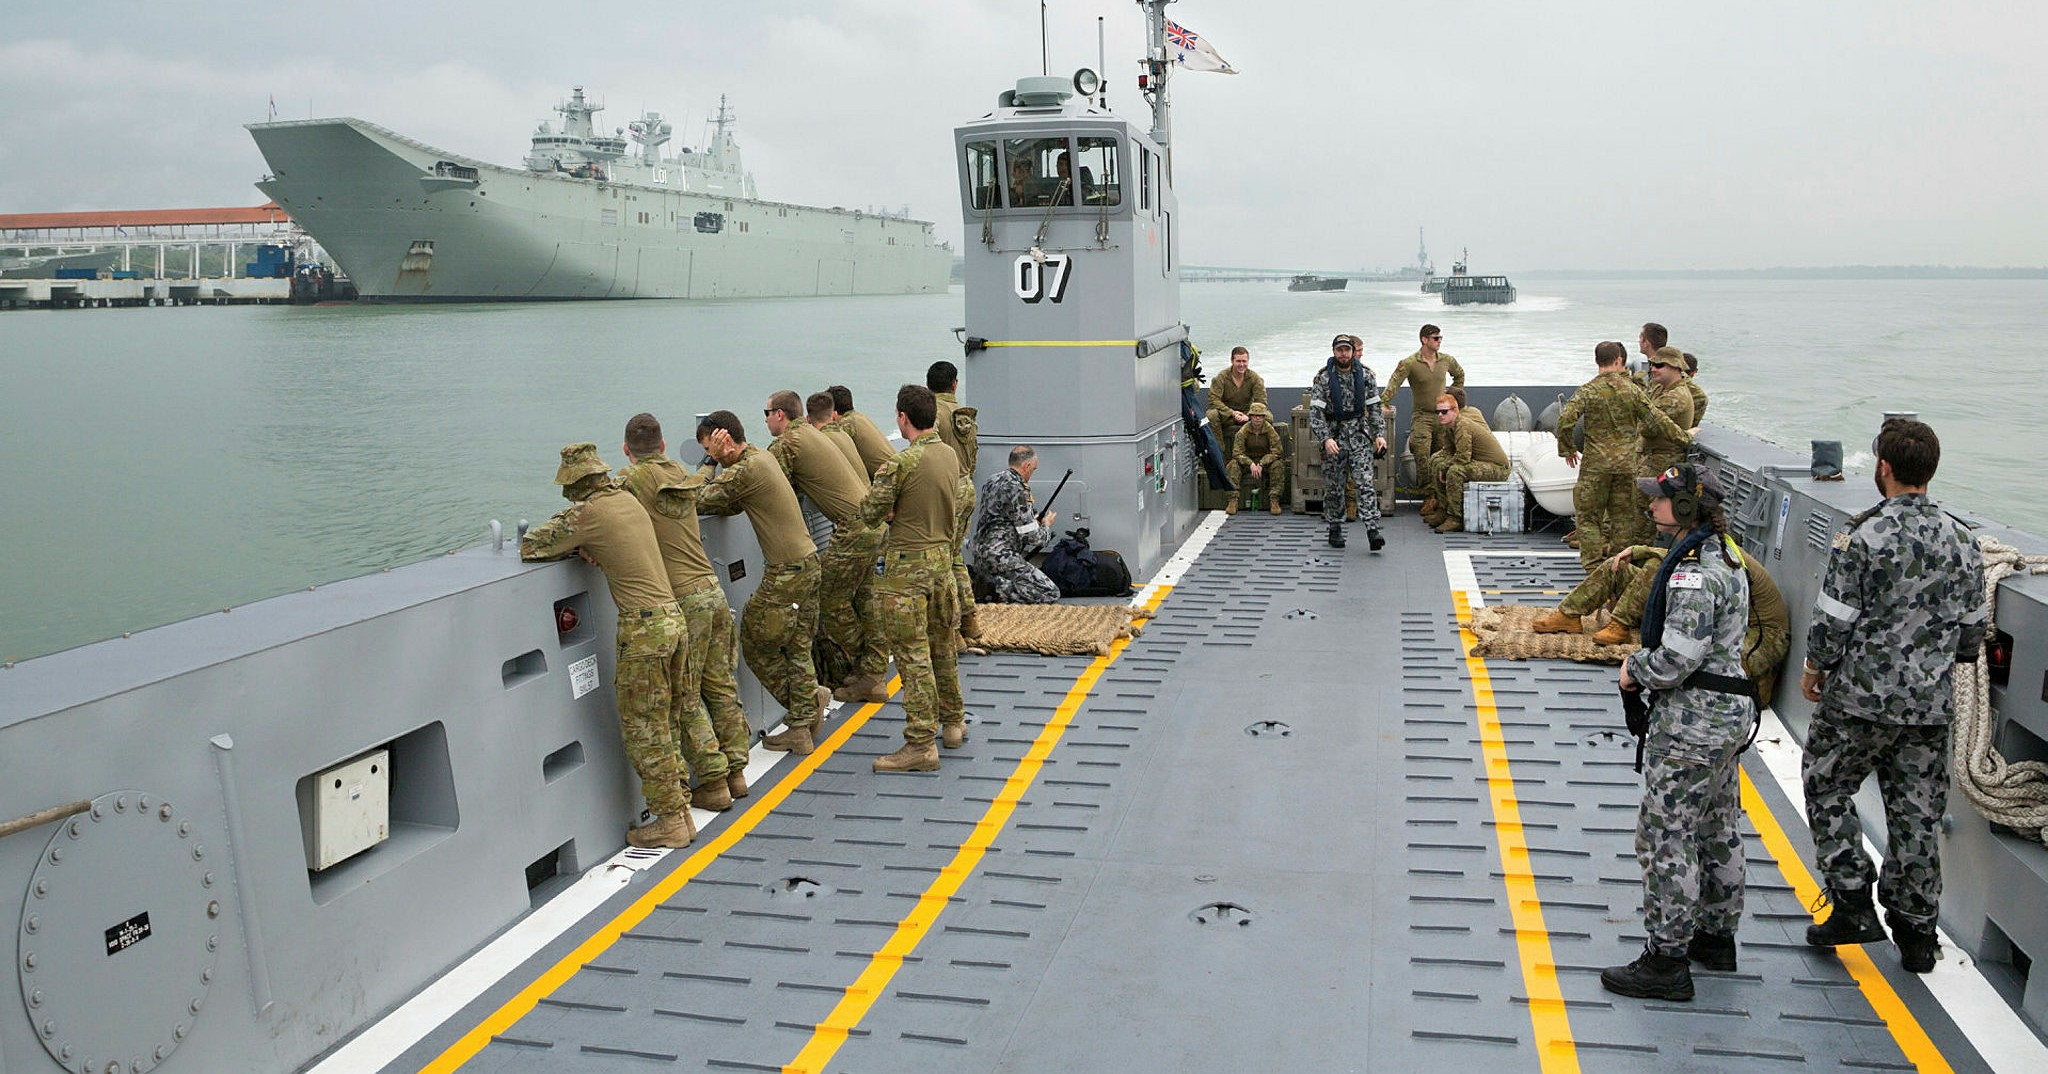 Landing craft from HMAS Adelaide sail through Port Klang to conduct training with the Malaysian Armed Forces during Indo Pacific Endeavour 2017. (Photo: Australia Defence)